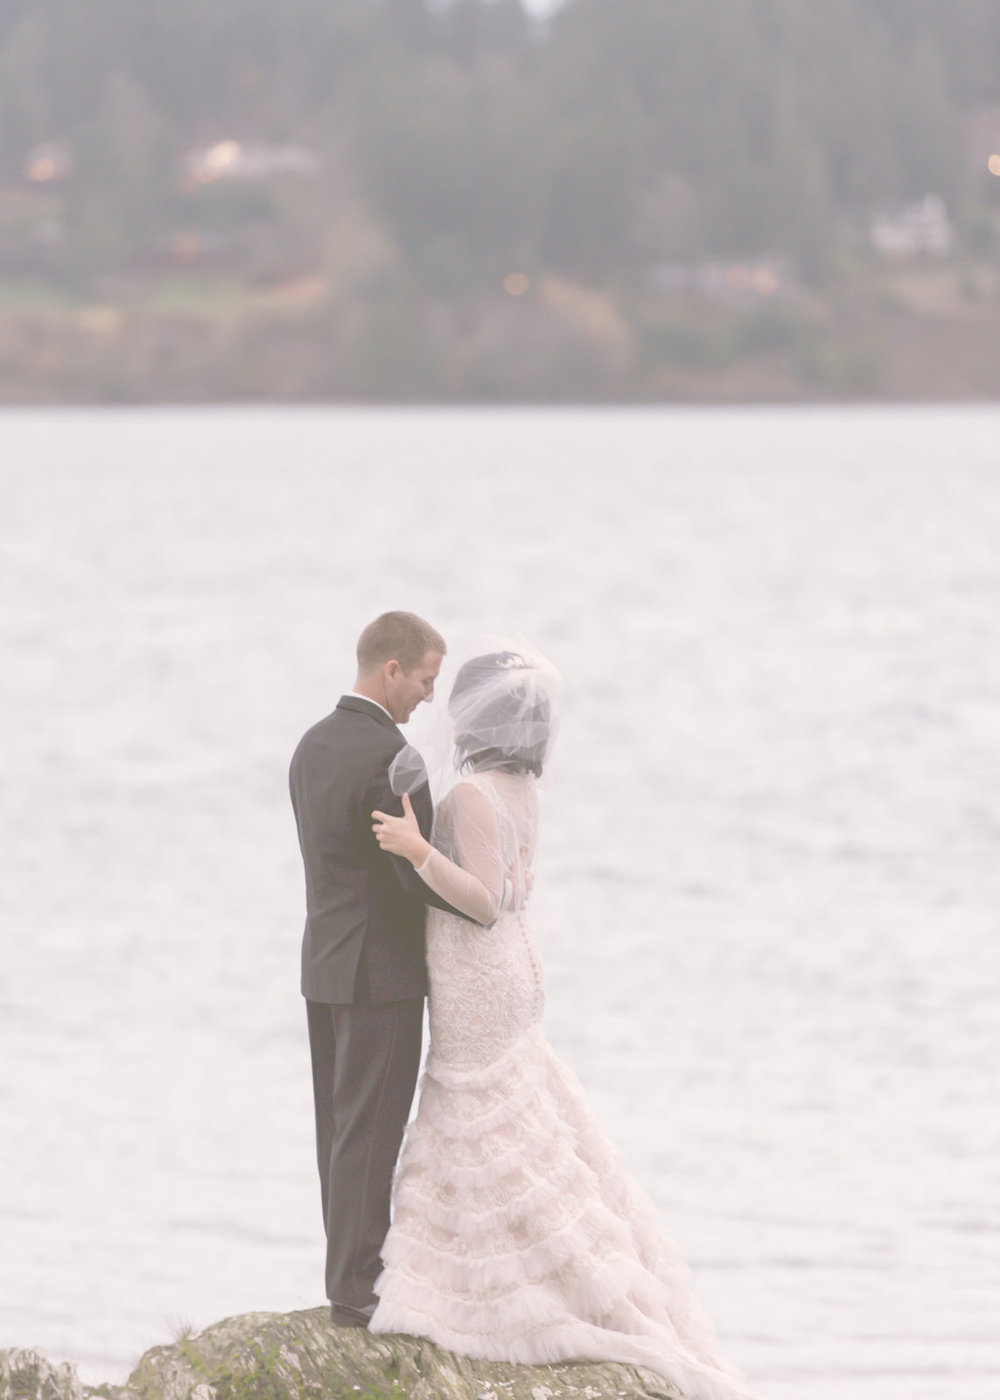 Rustic Winter Wedding Kiana Lodge Poulsbo Rainy Day-22.jpg